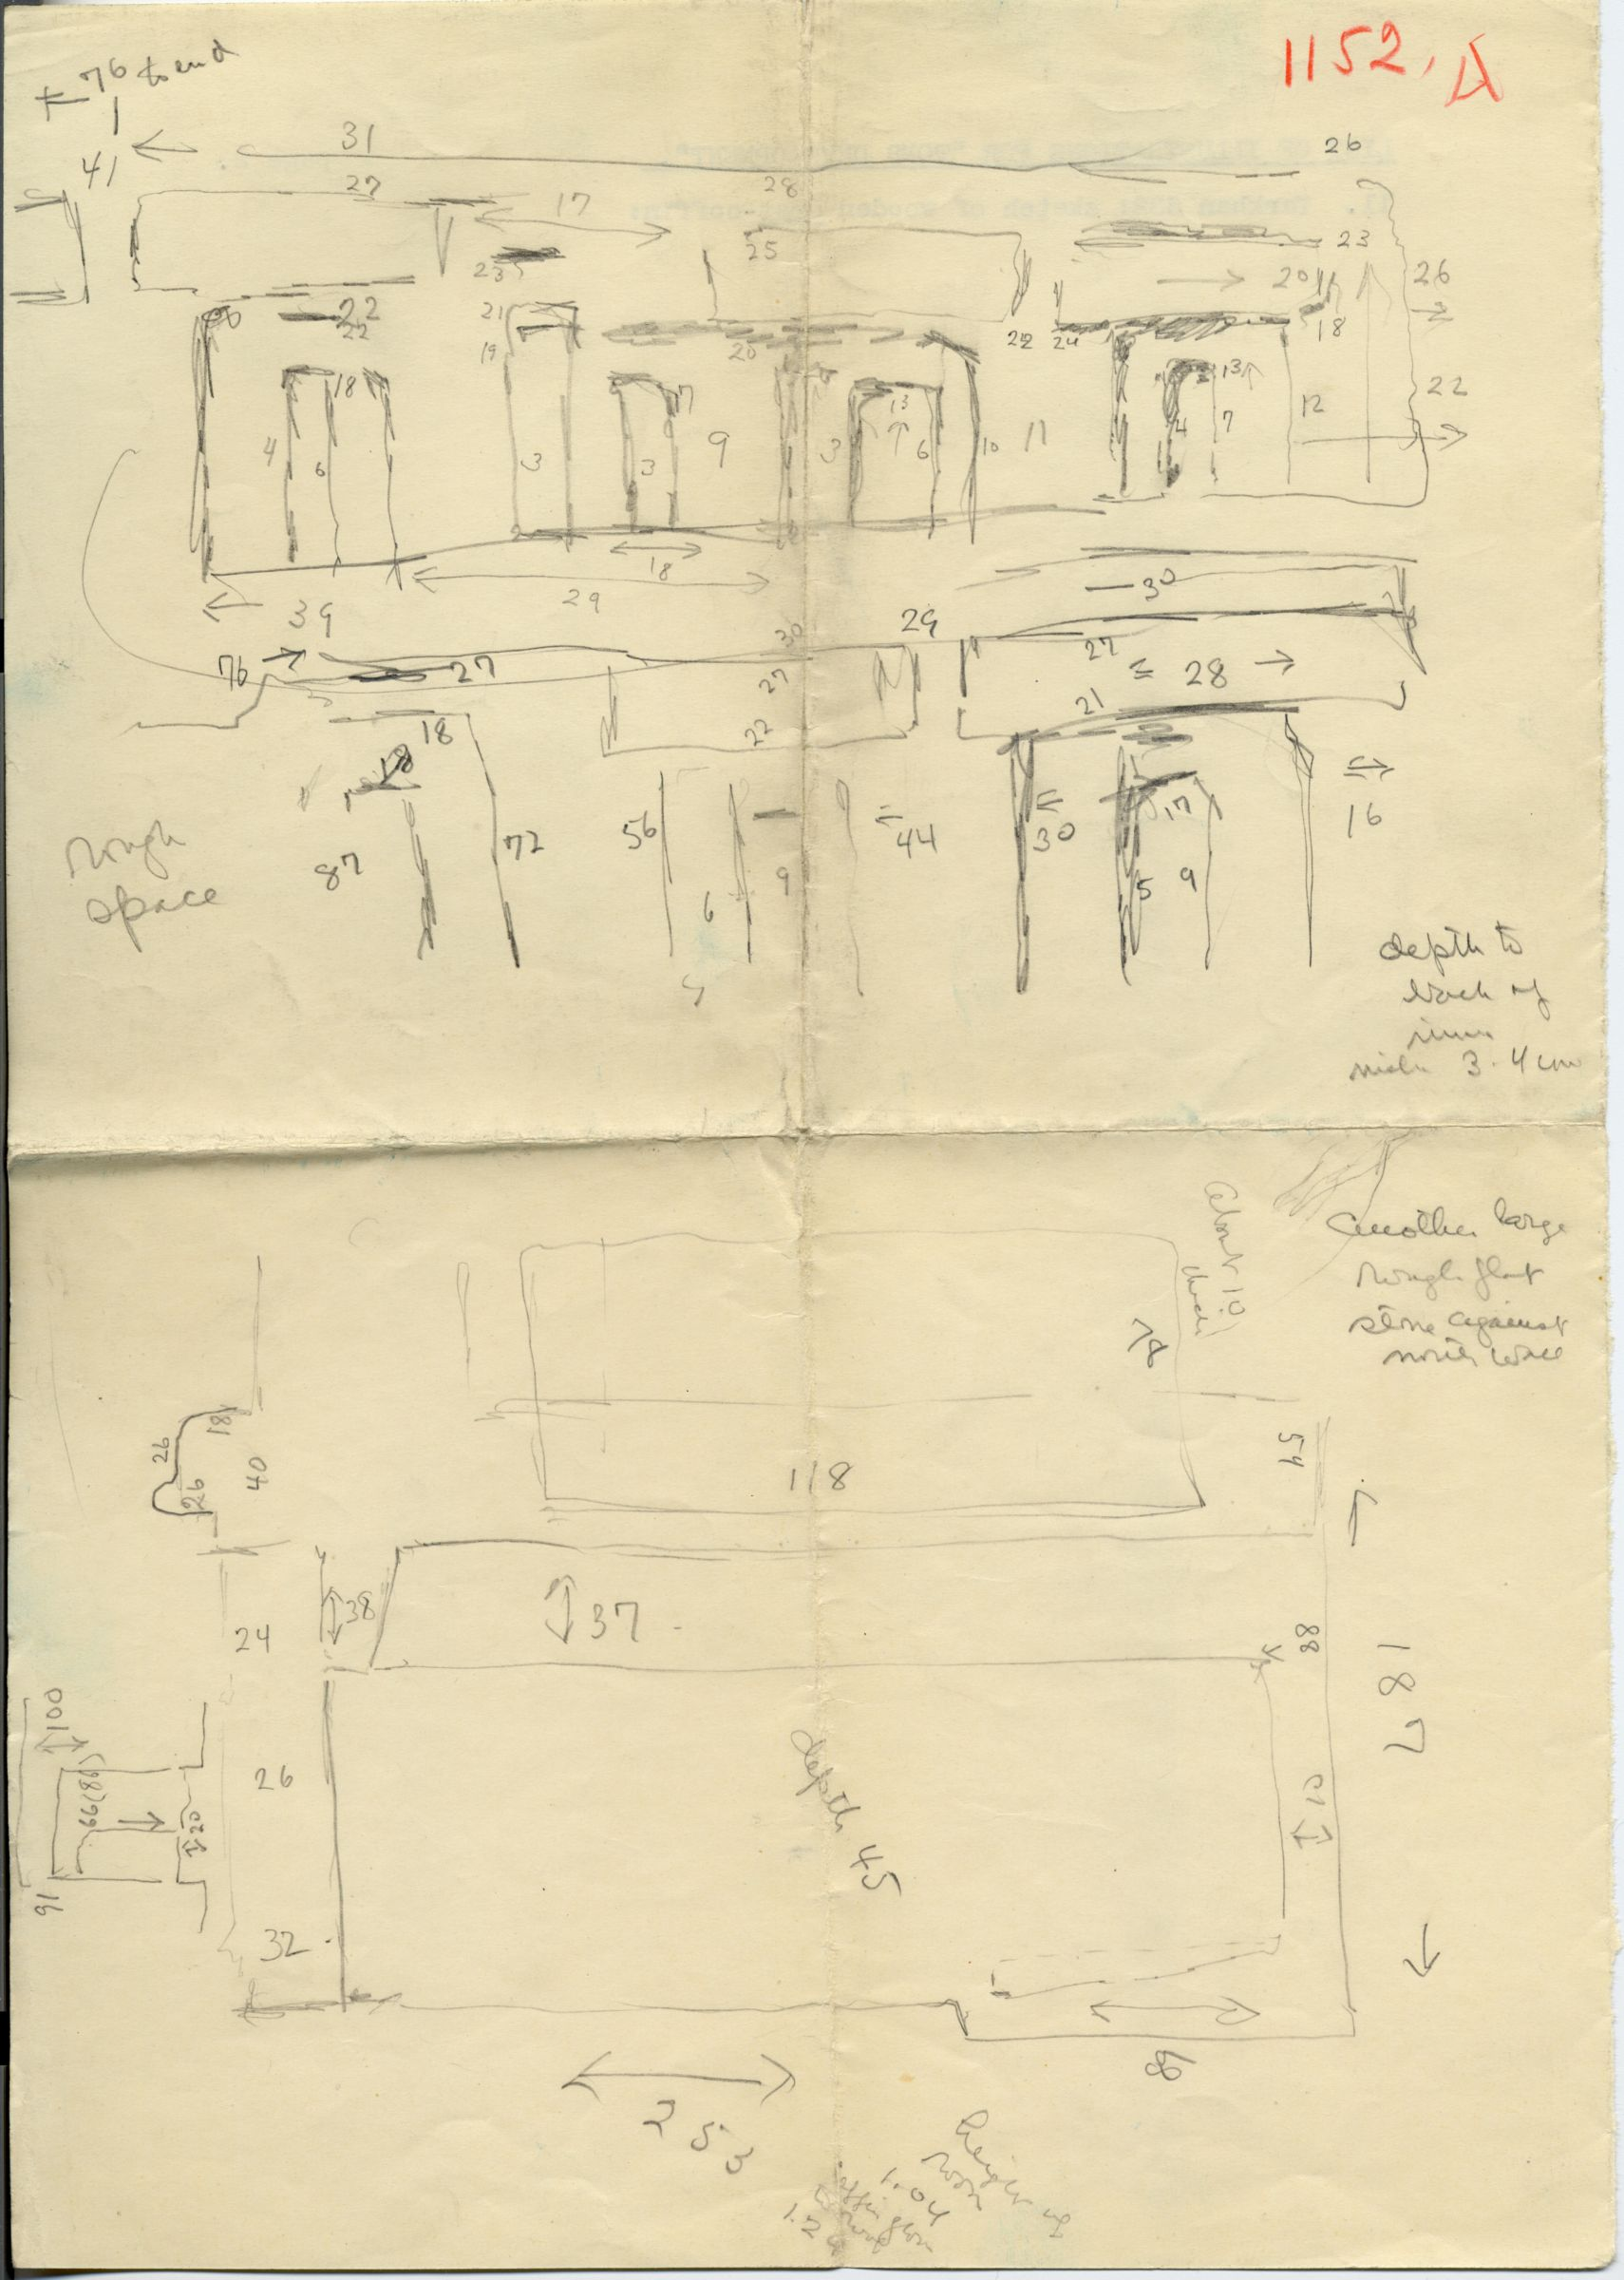 Maps and plans: G 1152, Shaft A